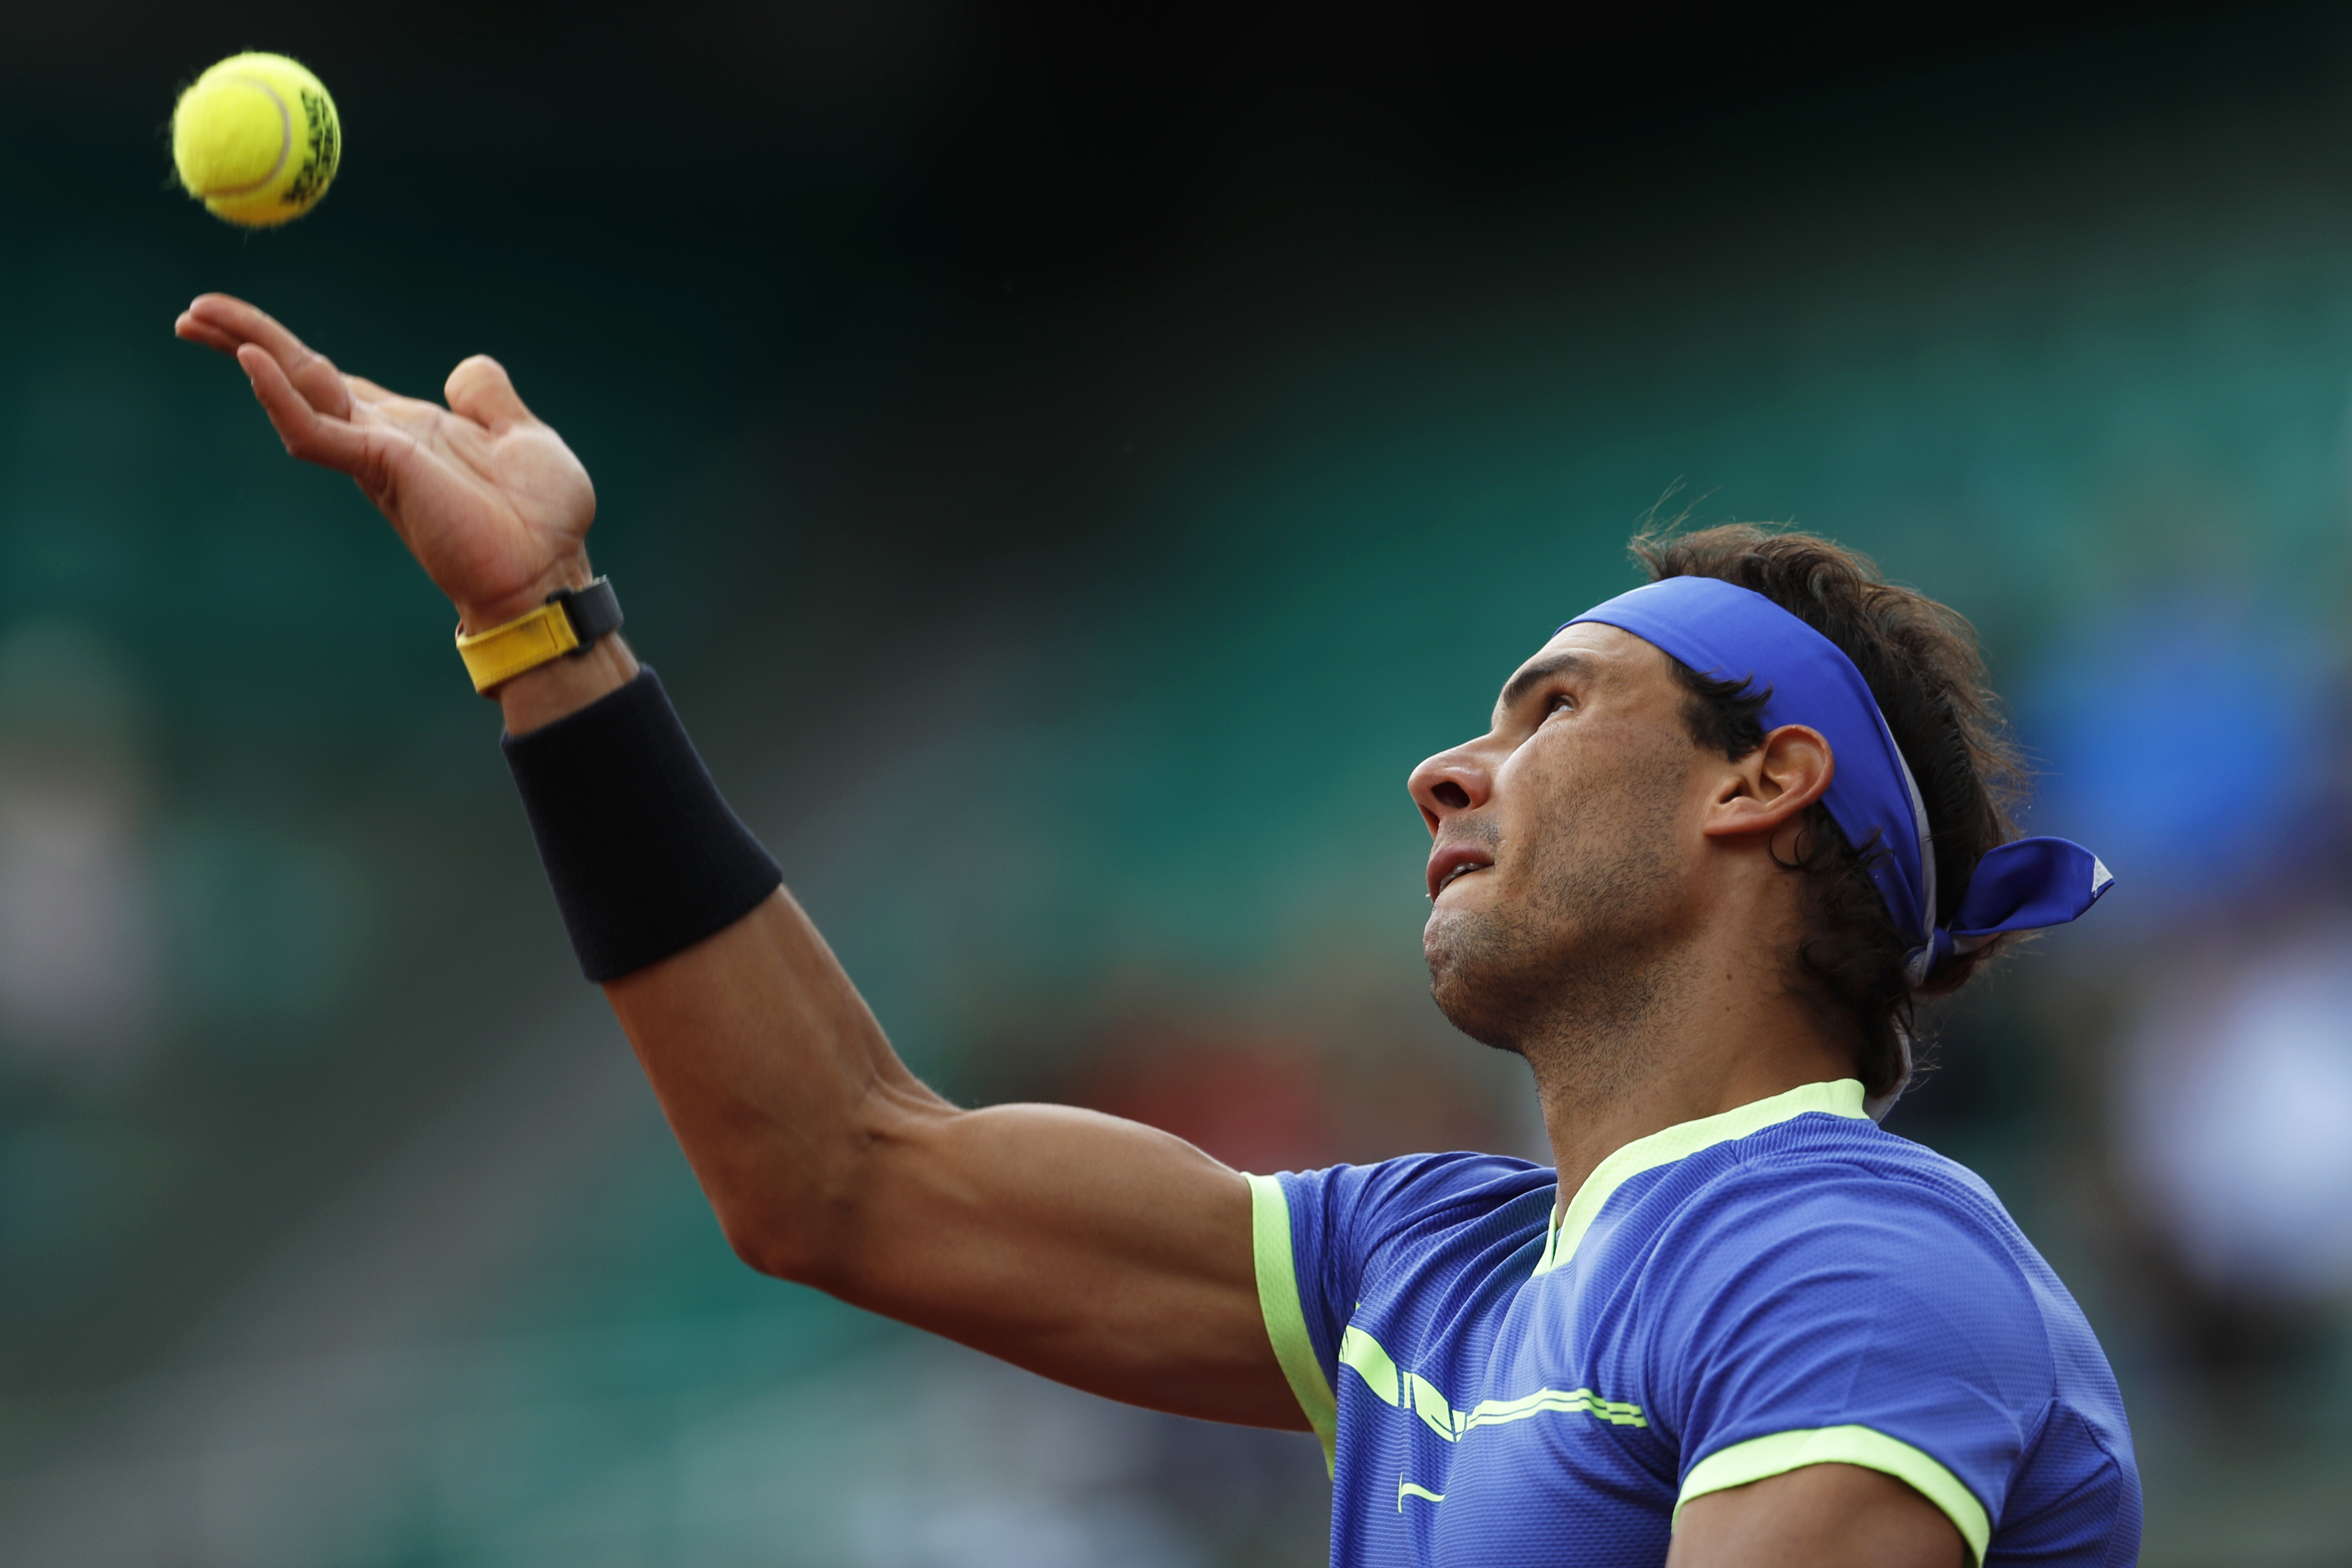 Spain's Rafael Nadal serves against Spain's Pablo Carreno Busta during their quarterfinal match of the French Open tennis tournament at the Roland Garros stadium, in Paris, France. Wednesday, June 7, 2017. (AP Photo/Petr David Josek)